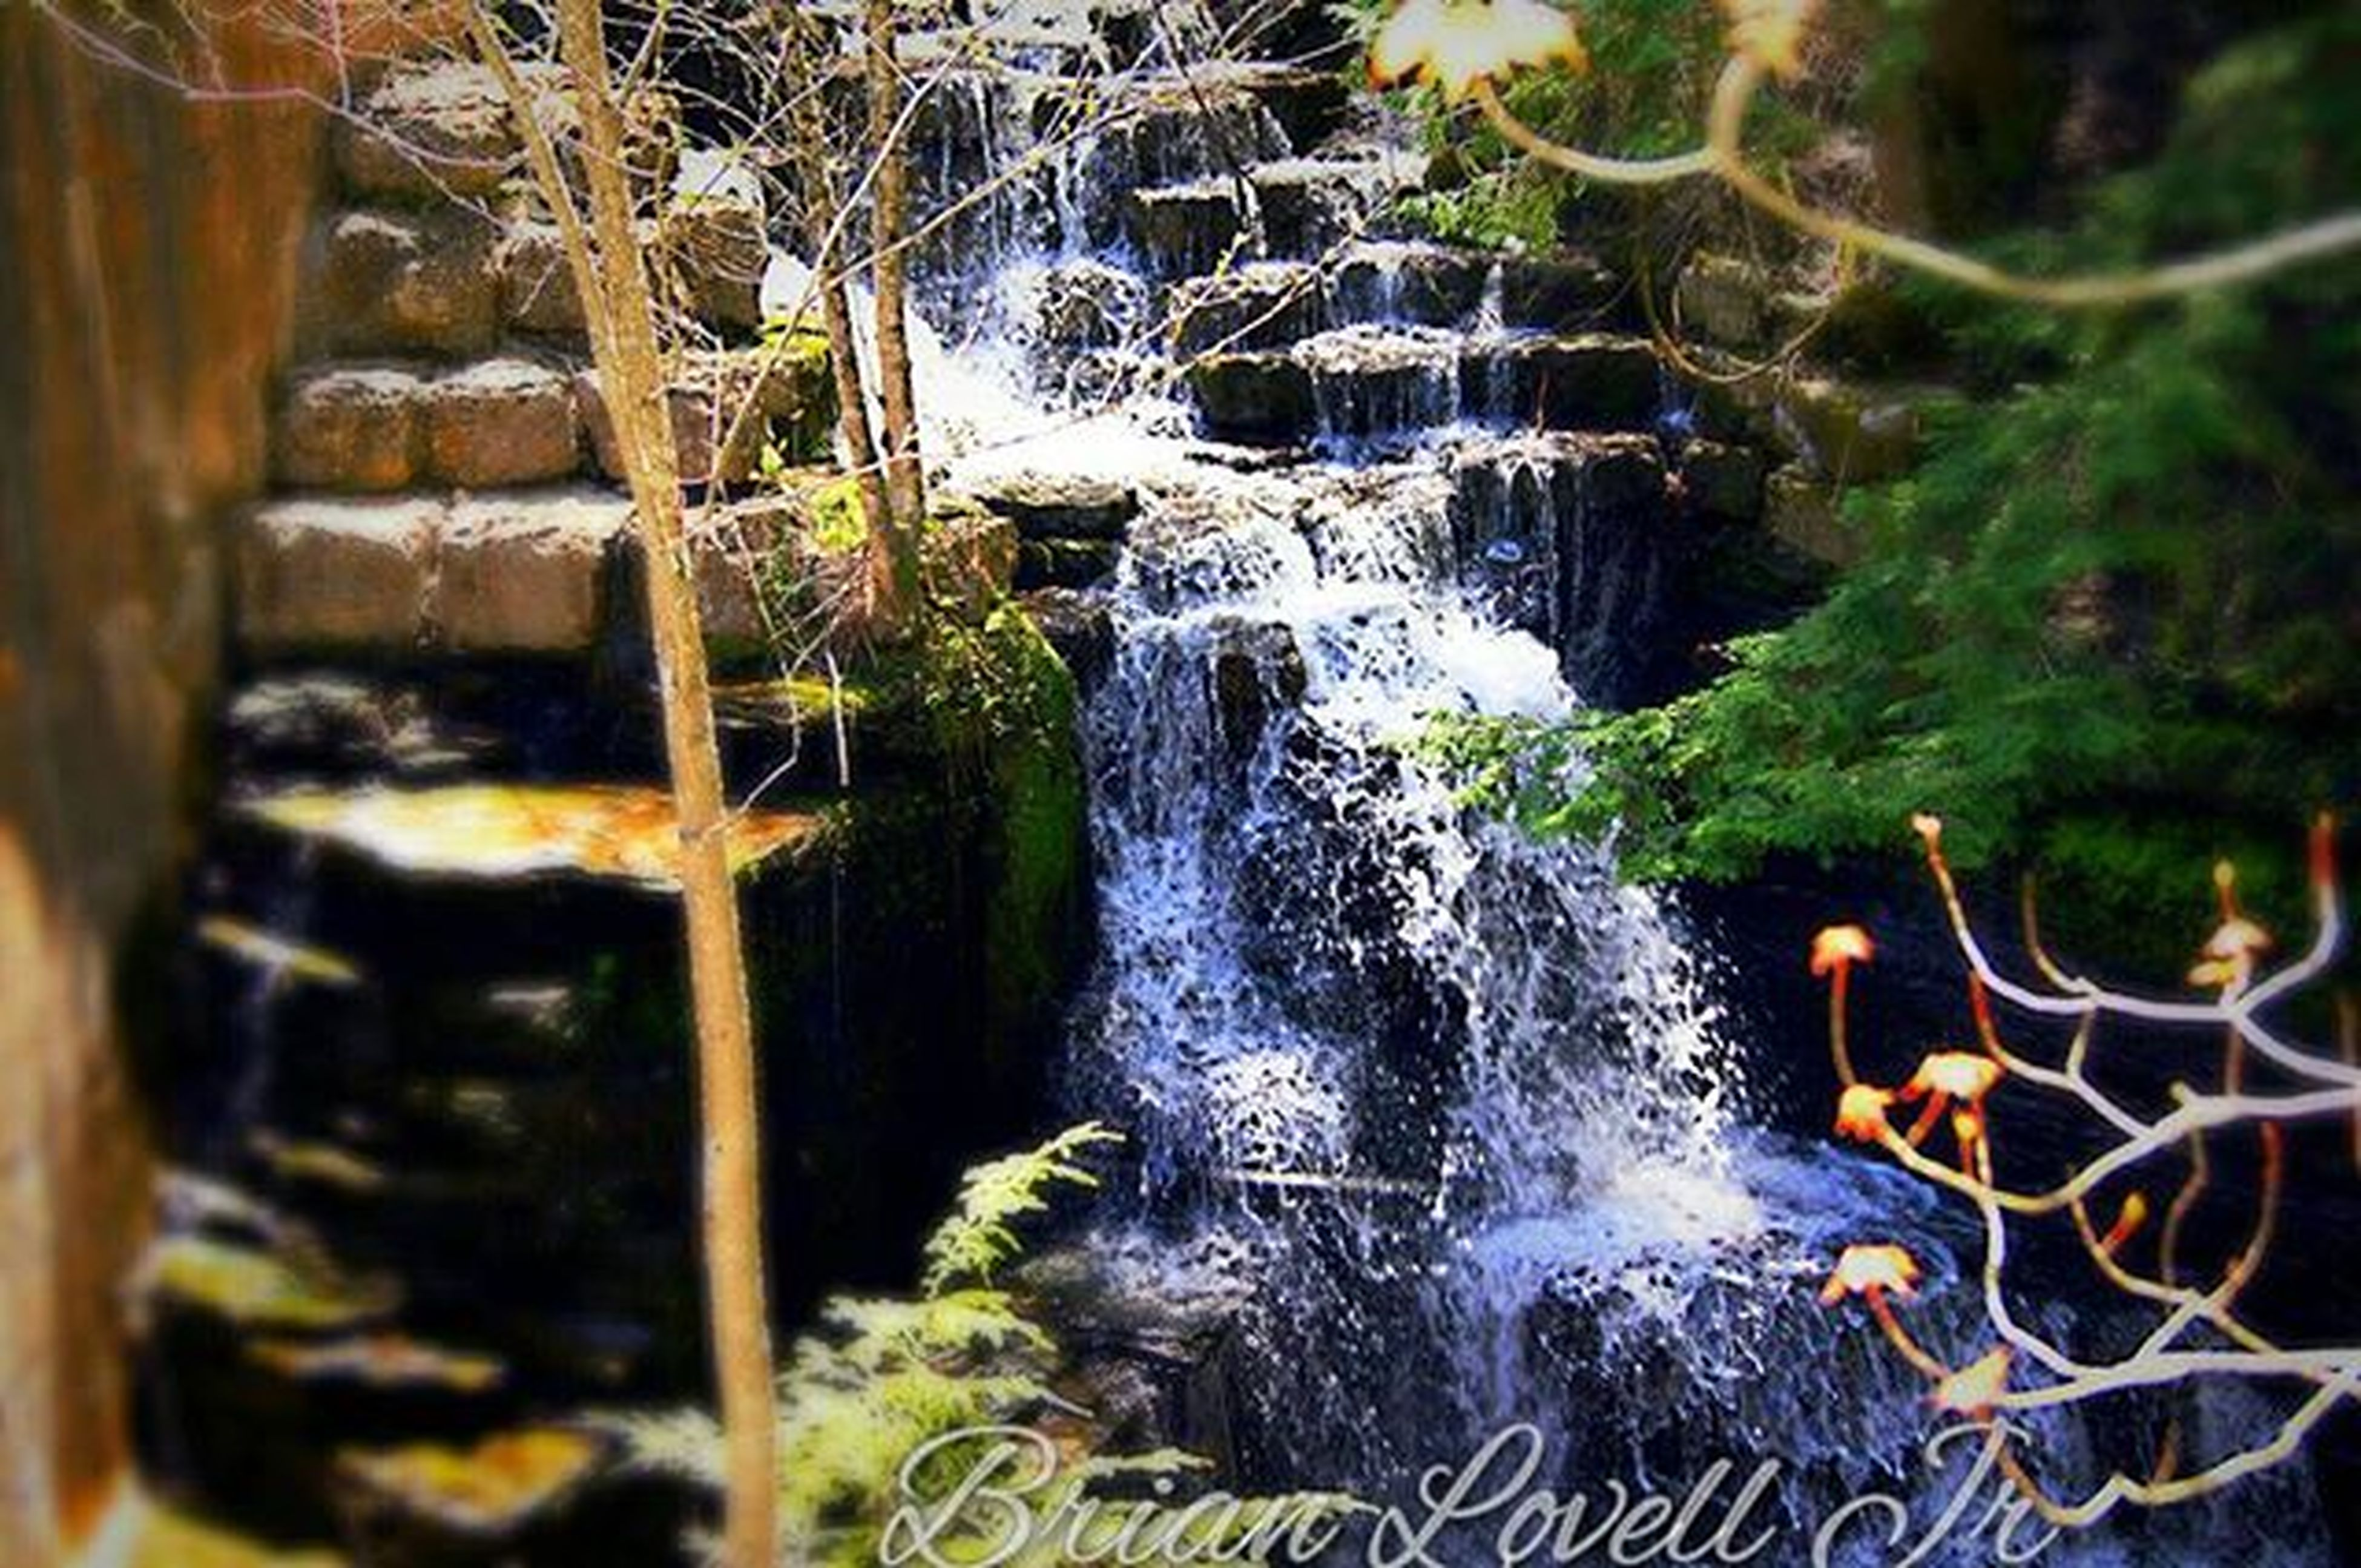 water, motion, flowing water, plant, long exposure, rock - object, waterfall, nature, flowing, forest, close-up, growth, splashing, outdoors, beauty in nature, day, no people, falling, selective focus, leaf